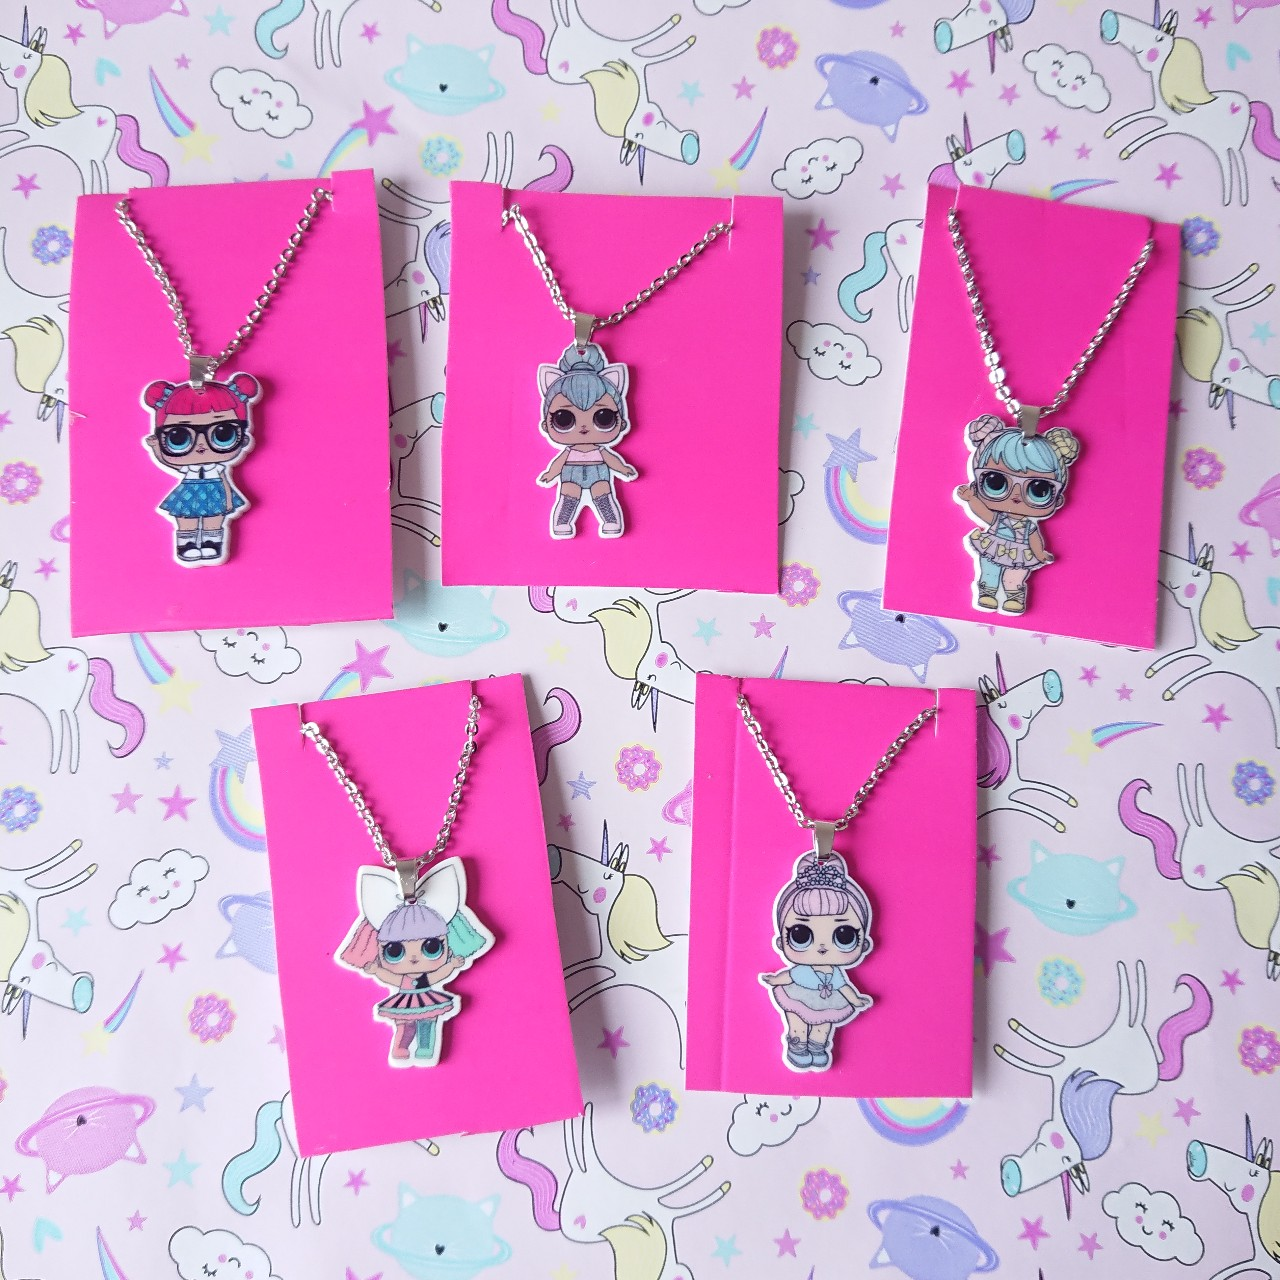 5 lol doll necklaces  Ideal stocking fillers  Party    - Depop